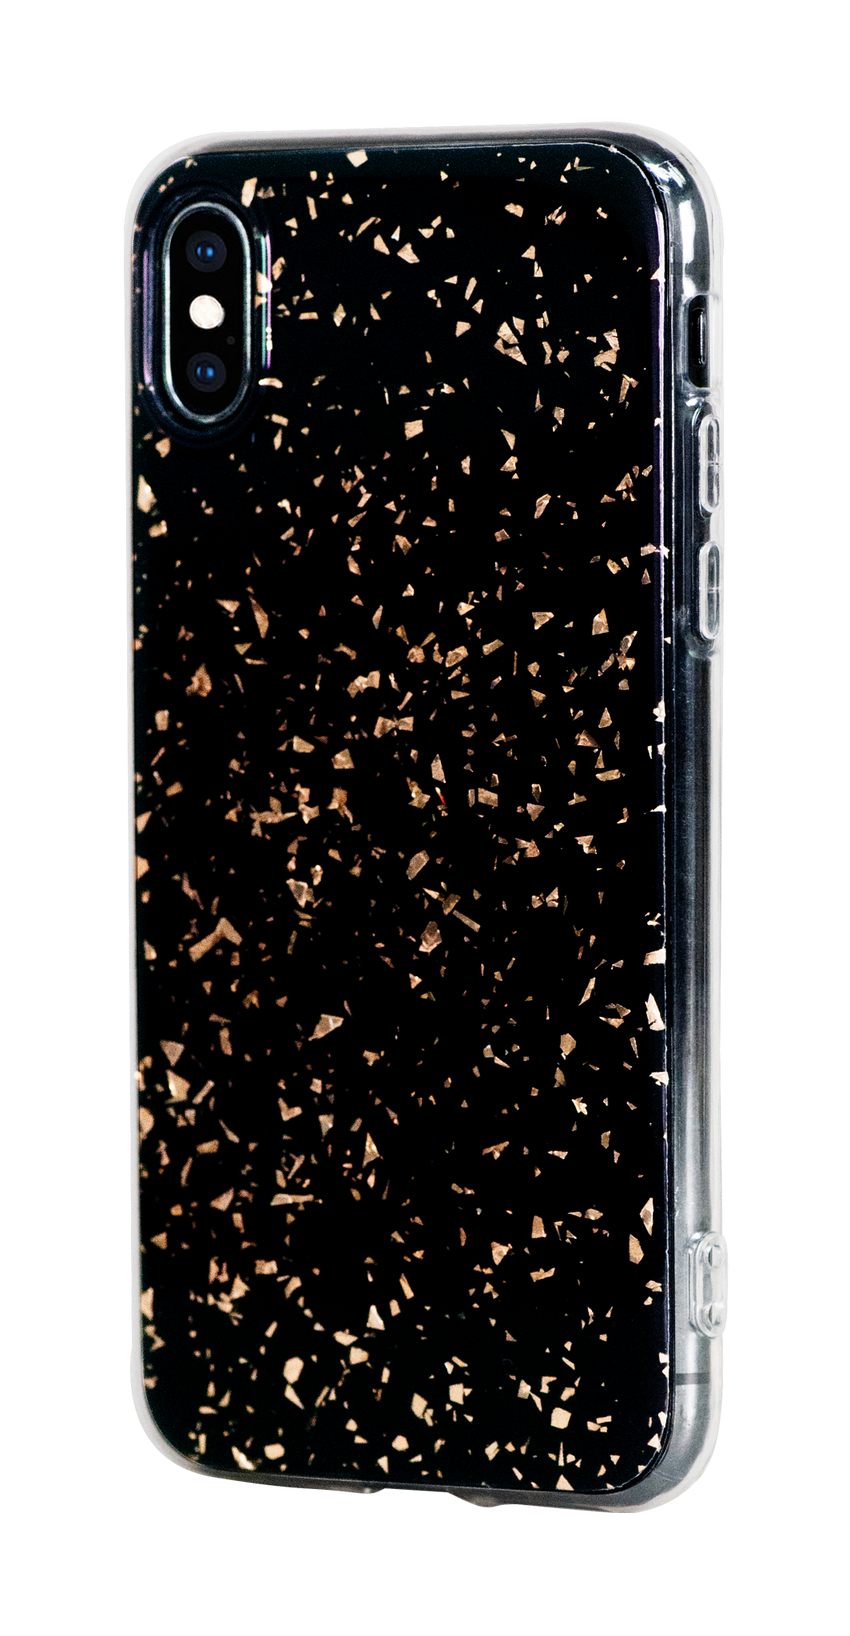 CHIC ᛫ BLACK GALAXY ᛫ with 3D gold glitter ᛫ double-layered TPU cover for iPhone X & XS - Bling My Thing